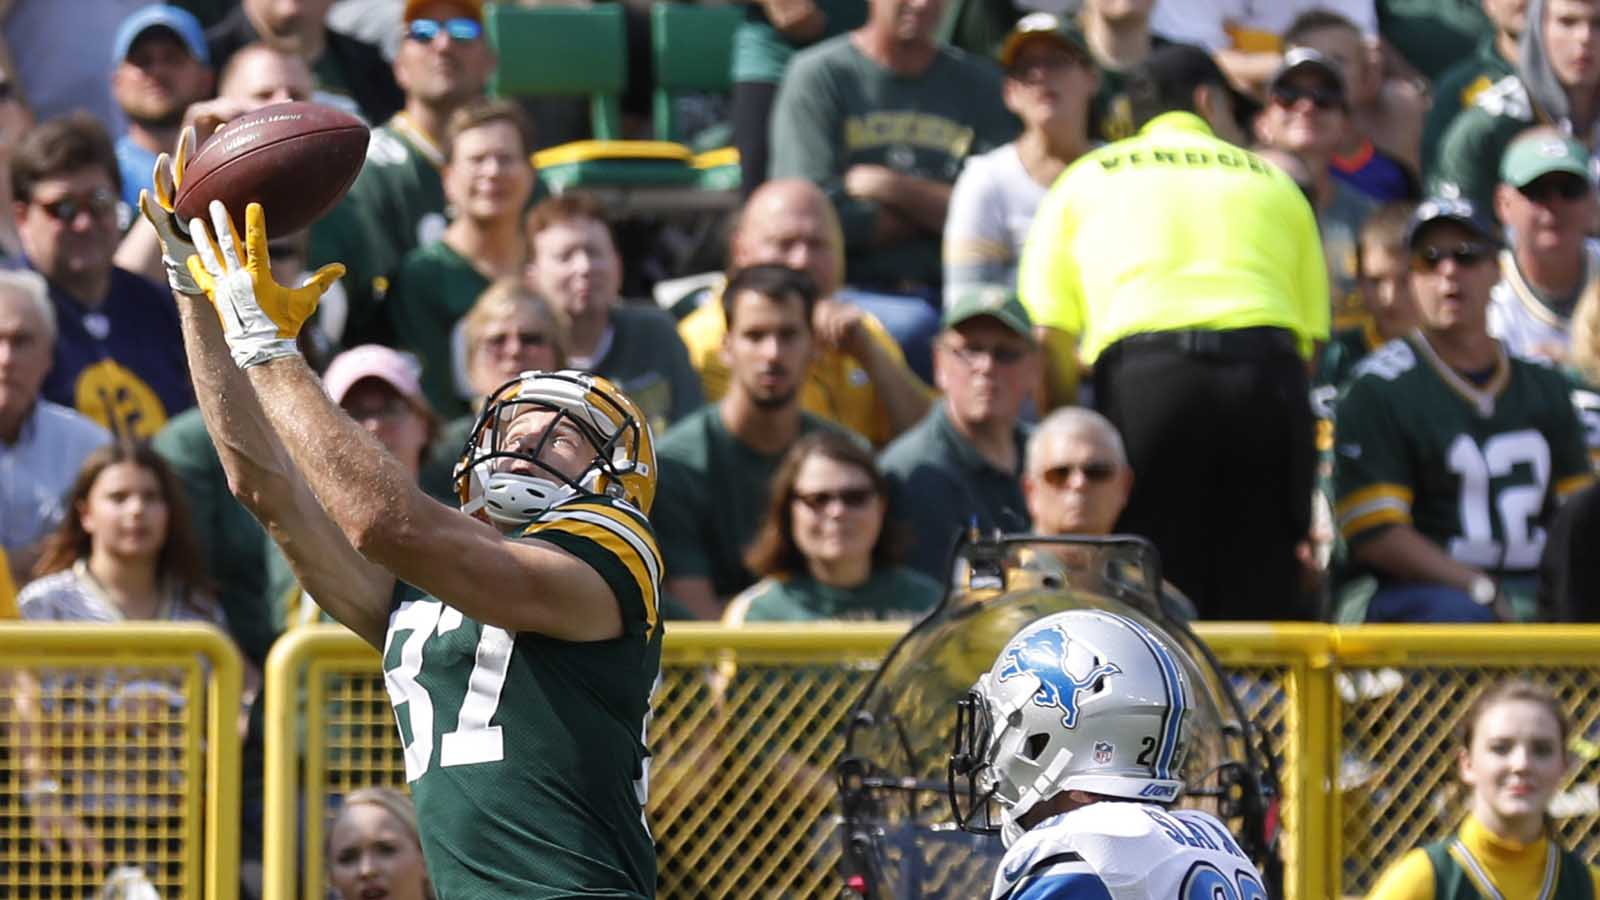 Upon Further Review: Packers' offense in rhythm in win over Lions